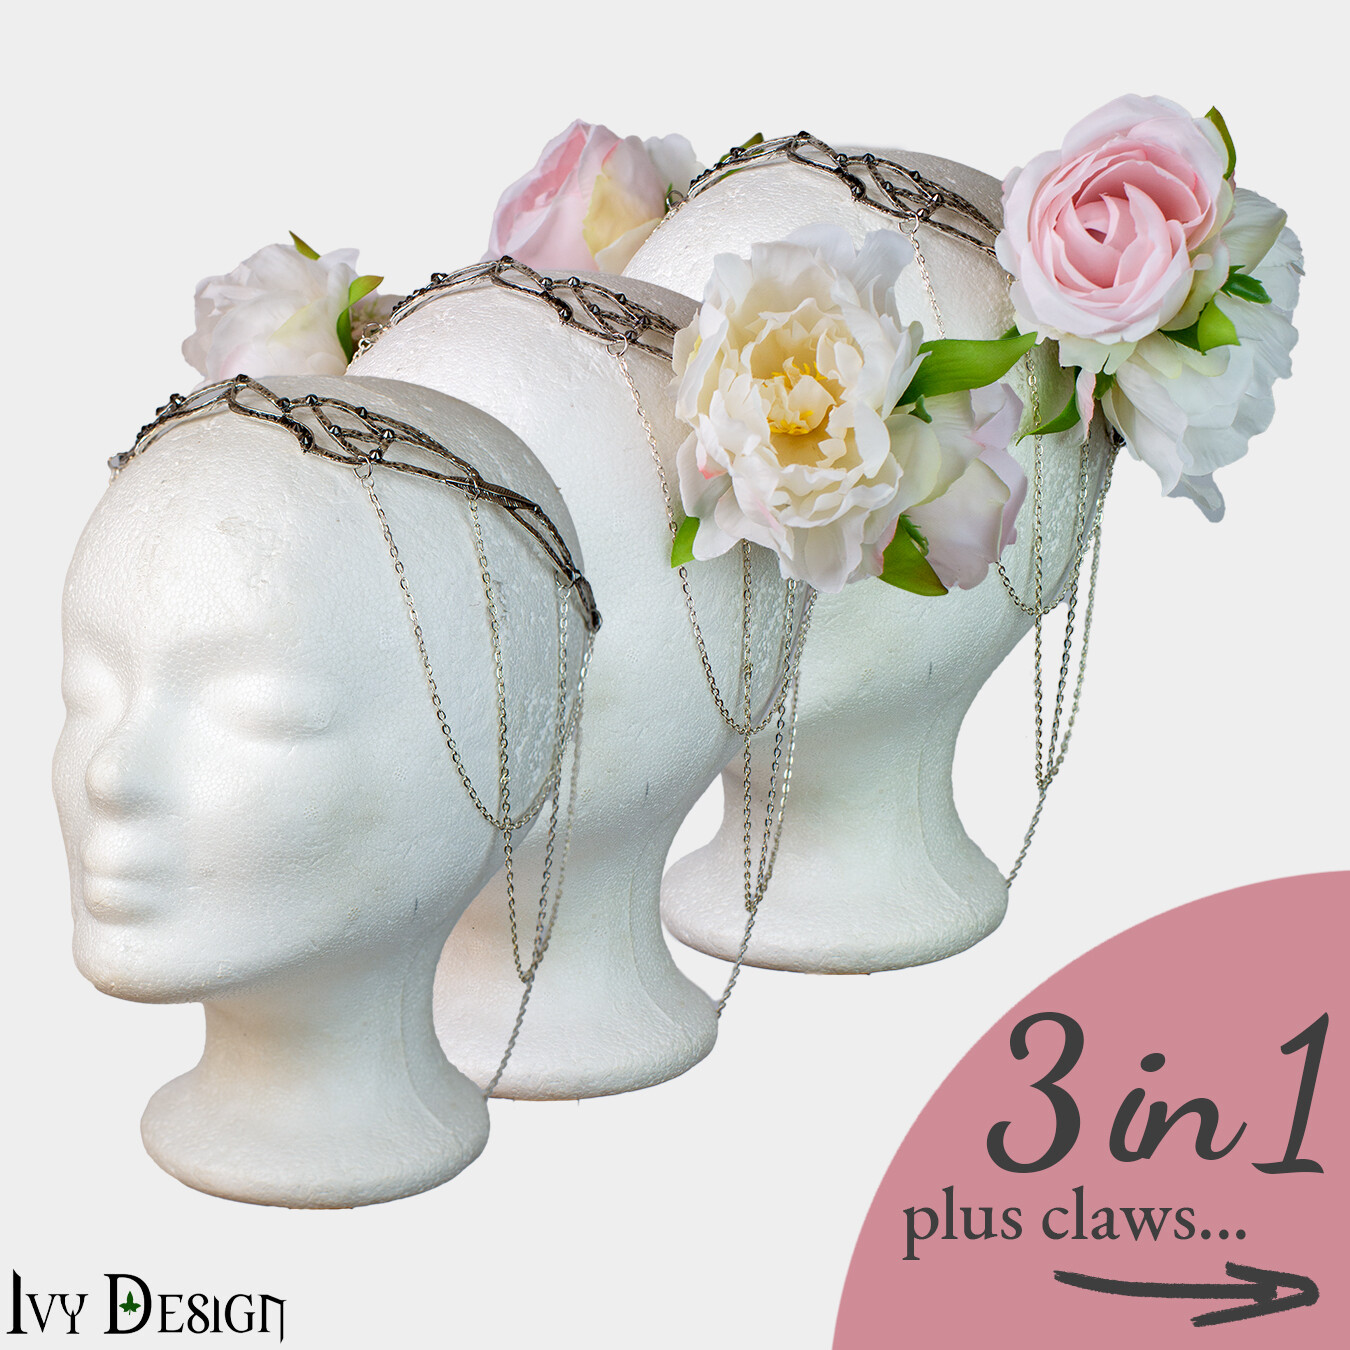 'Eldrin' Headpiece and Claw-Set // 3 in 1 🌹